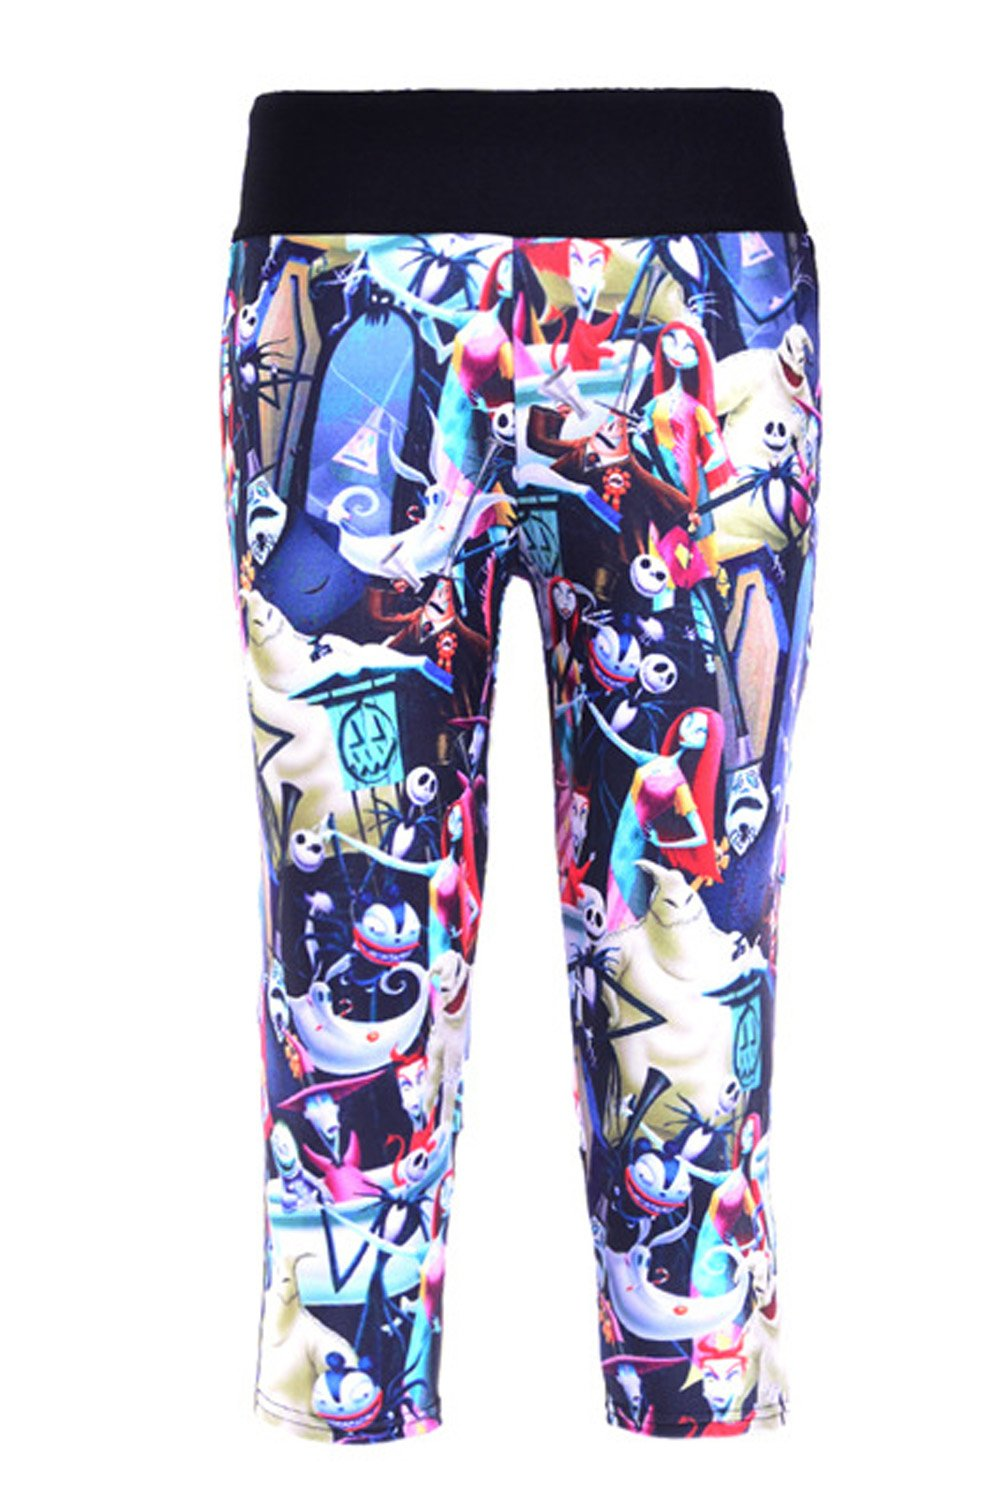 Lady Queen Women's Nightmare Before Christmas Knee Length Tight Sports Capri Pants